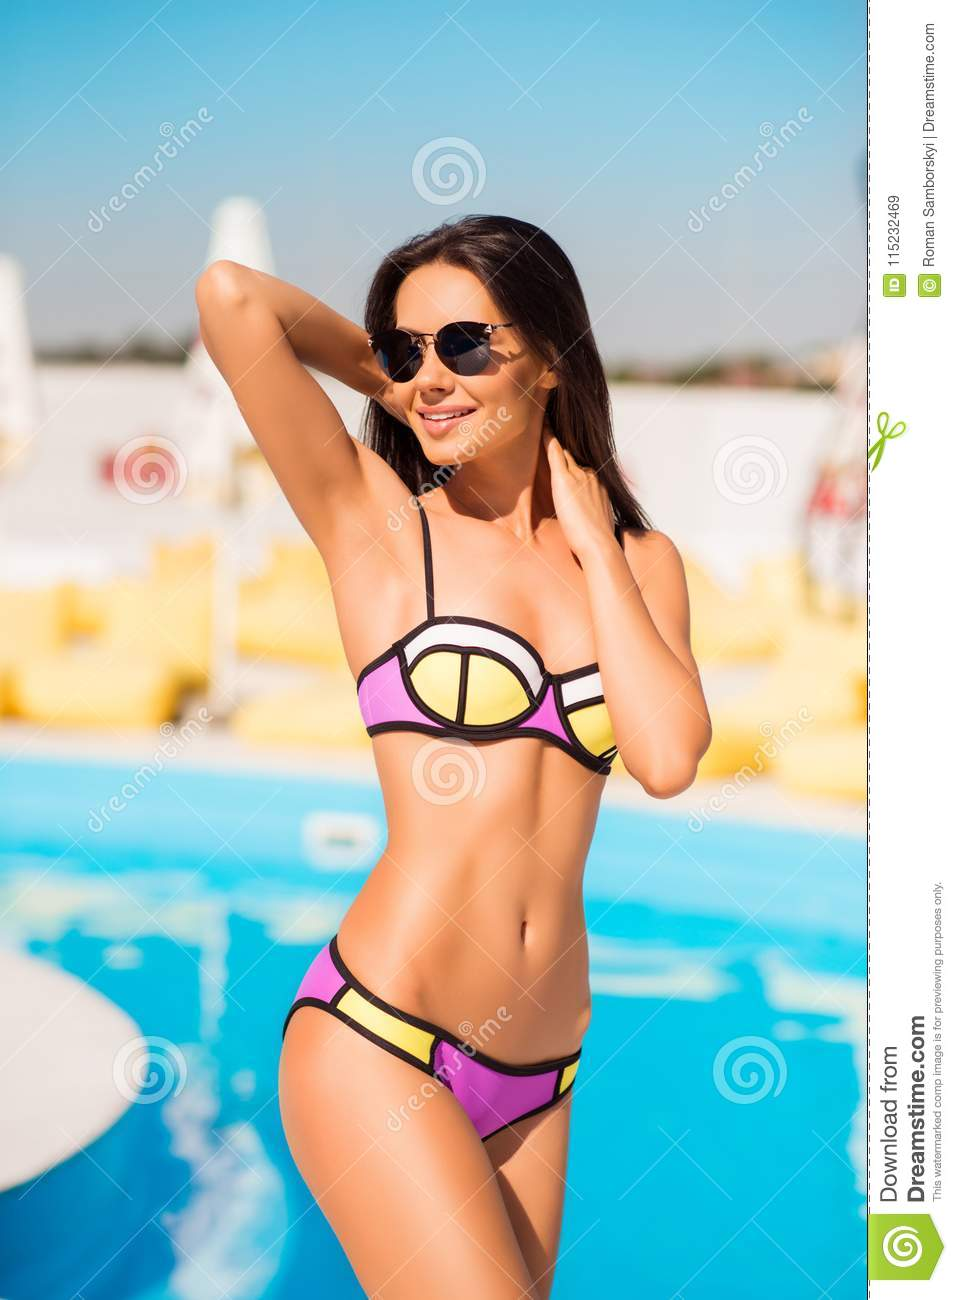 e63f1763604d6 slim brunette gorgeous girl in sun glasses is standing by the swimming pool  in colorful swim suit, so hot and attractive, figure is ideal, ...